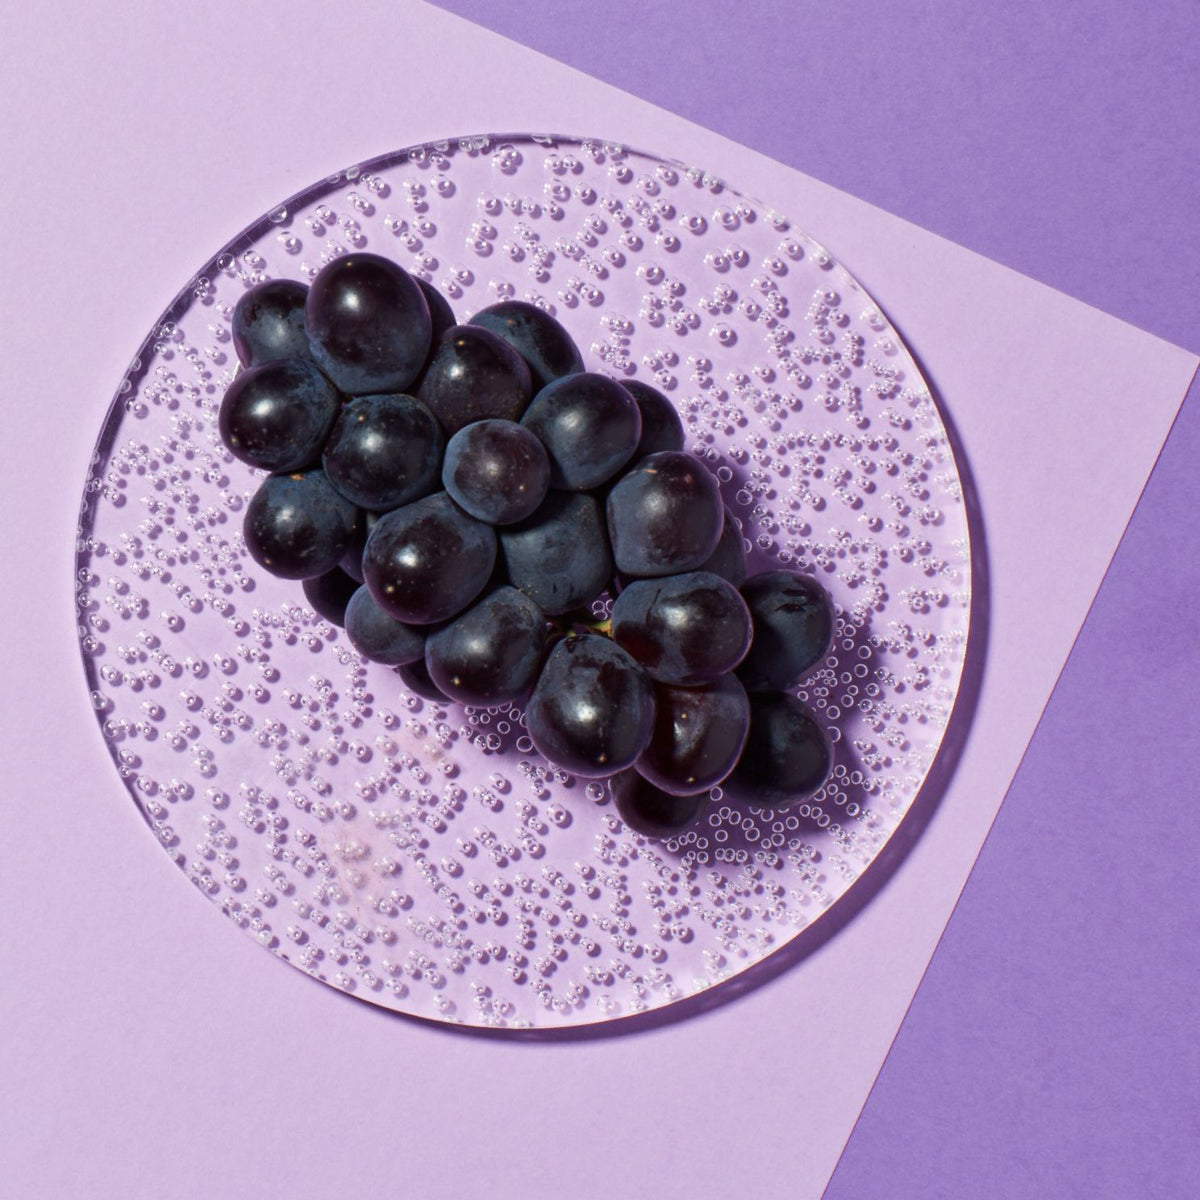 antioxidant rich concord grapes